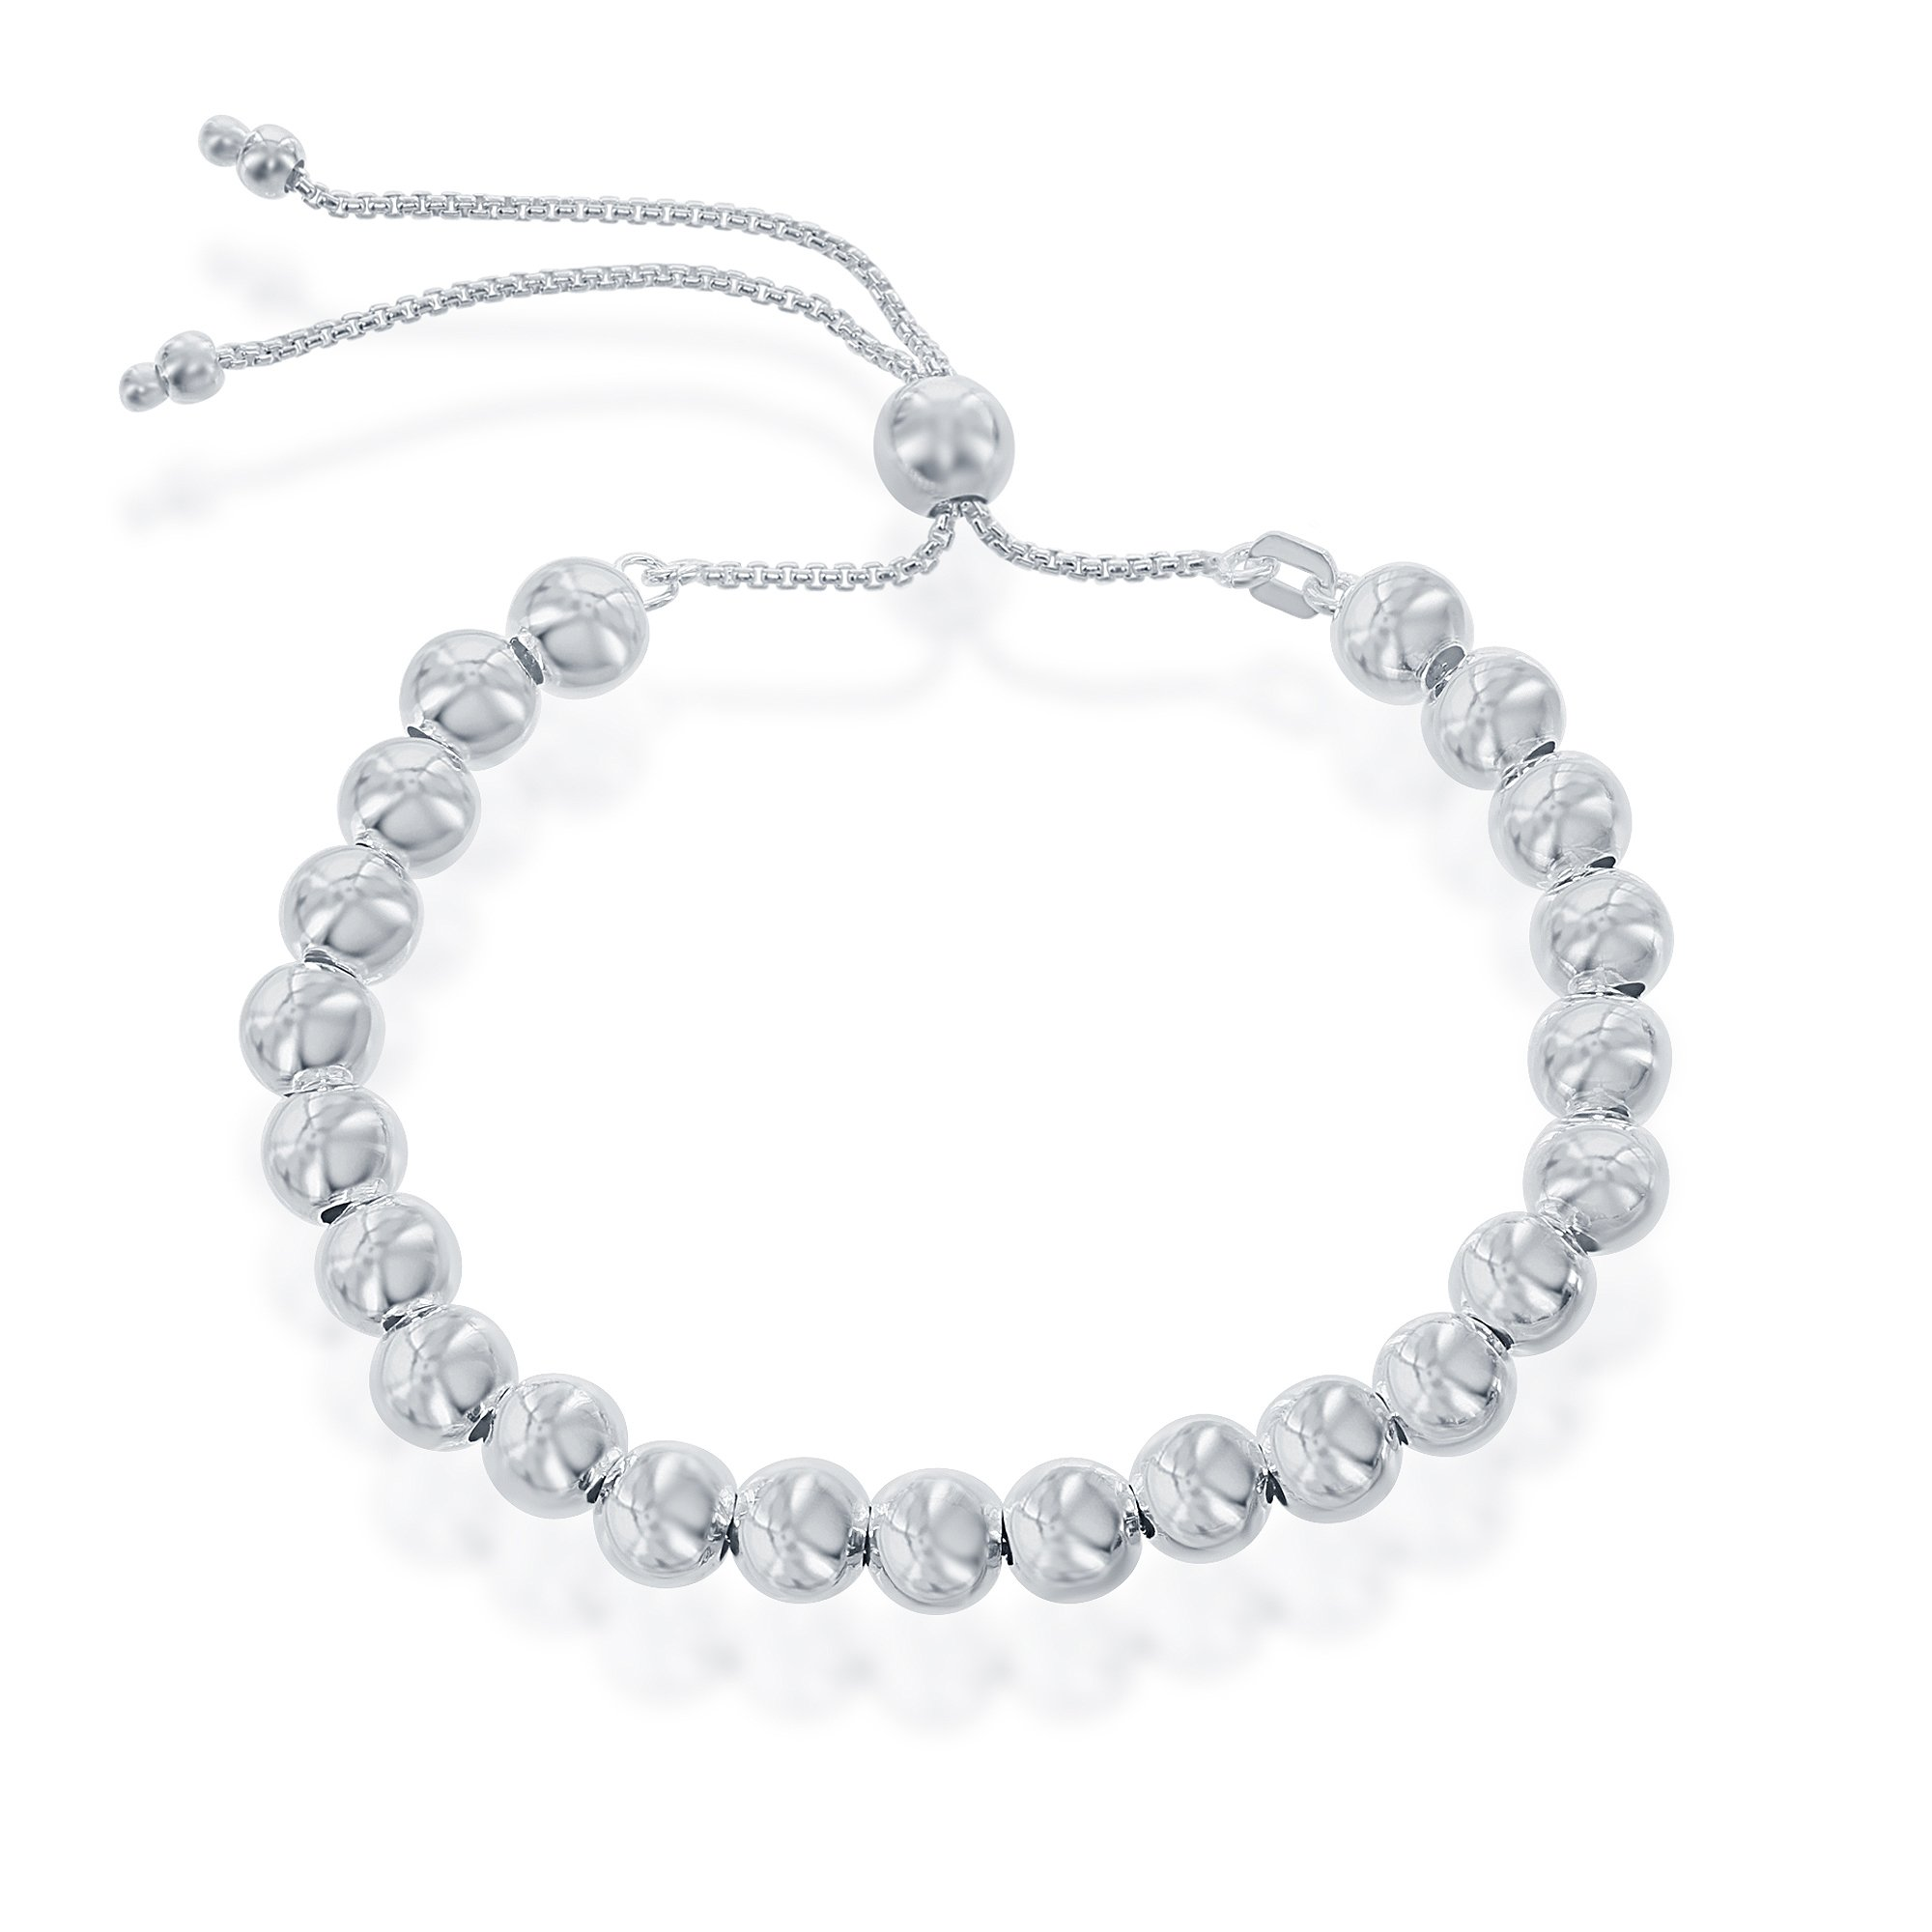 Sterling Silver Italian 6mm High Polish Round Beads Adjustable up to 9.5'' Bolo Bracelet